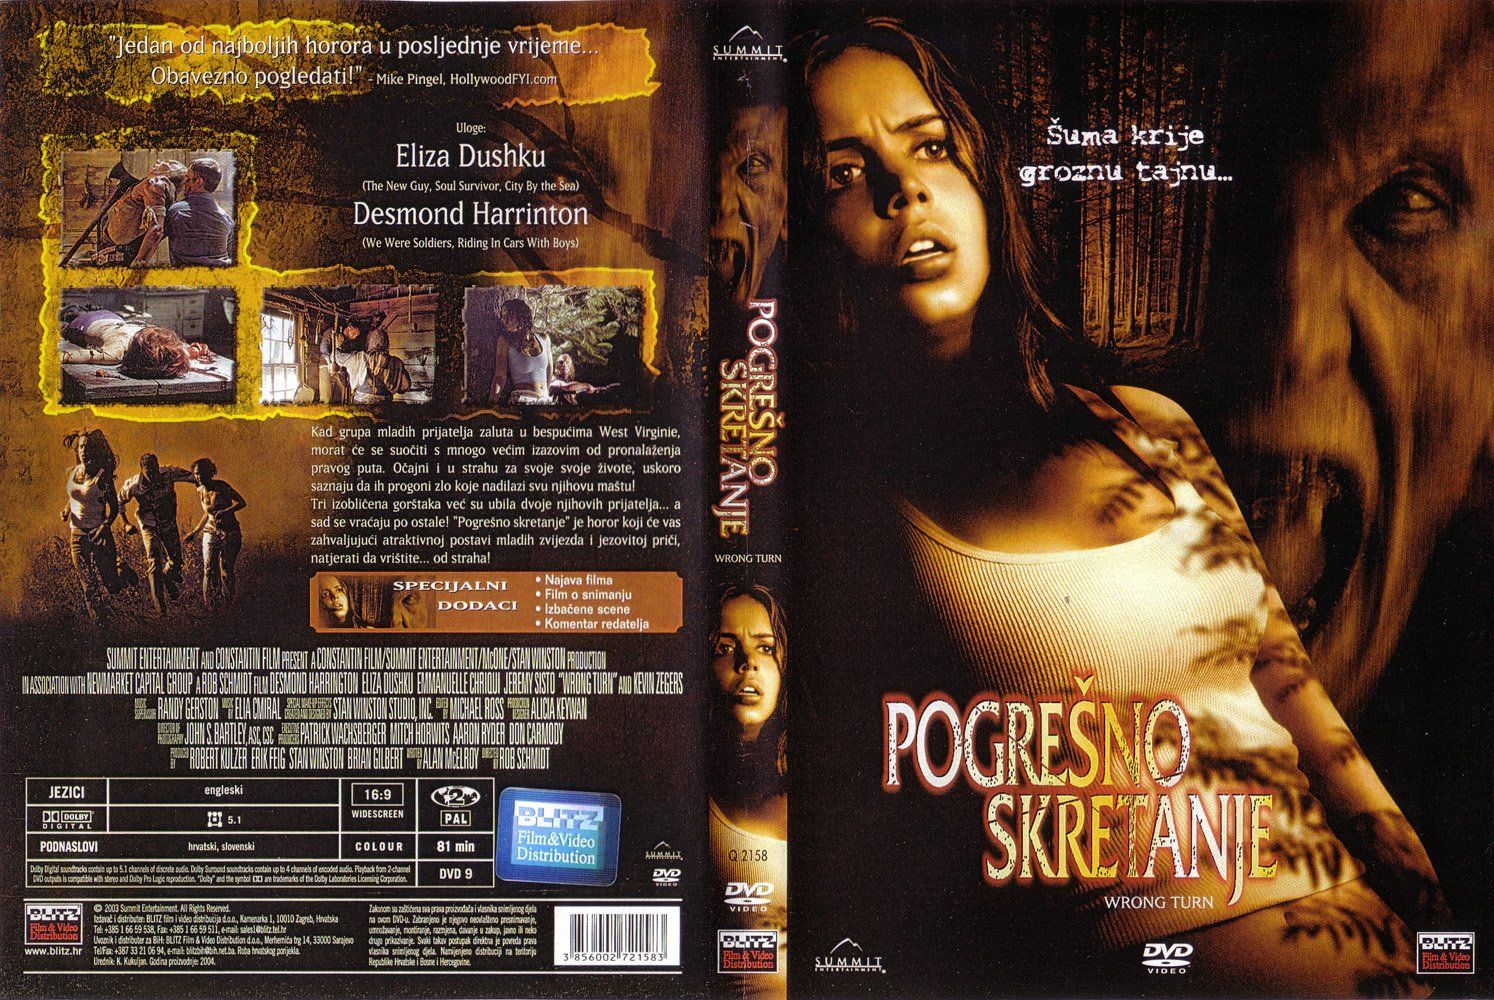 Wrong Turn Dvd Hr Dvd Covers Cover Century Over 500 000 Album Art Covers For Free